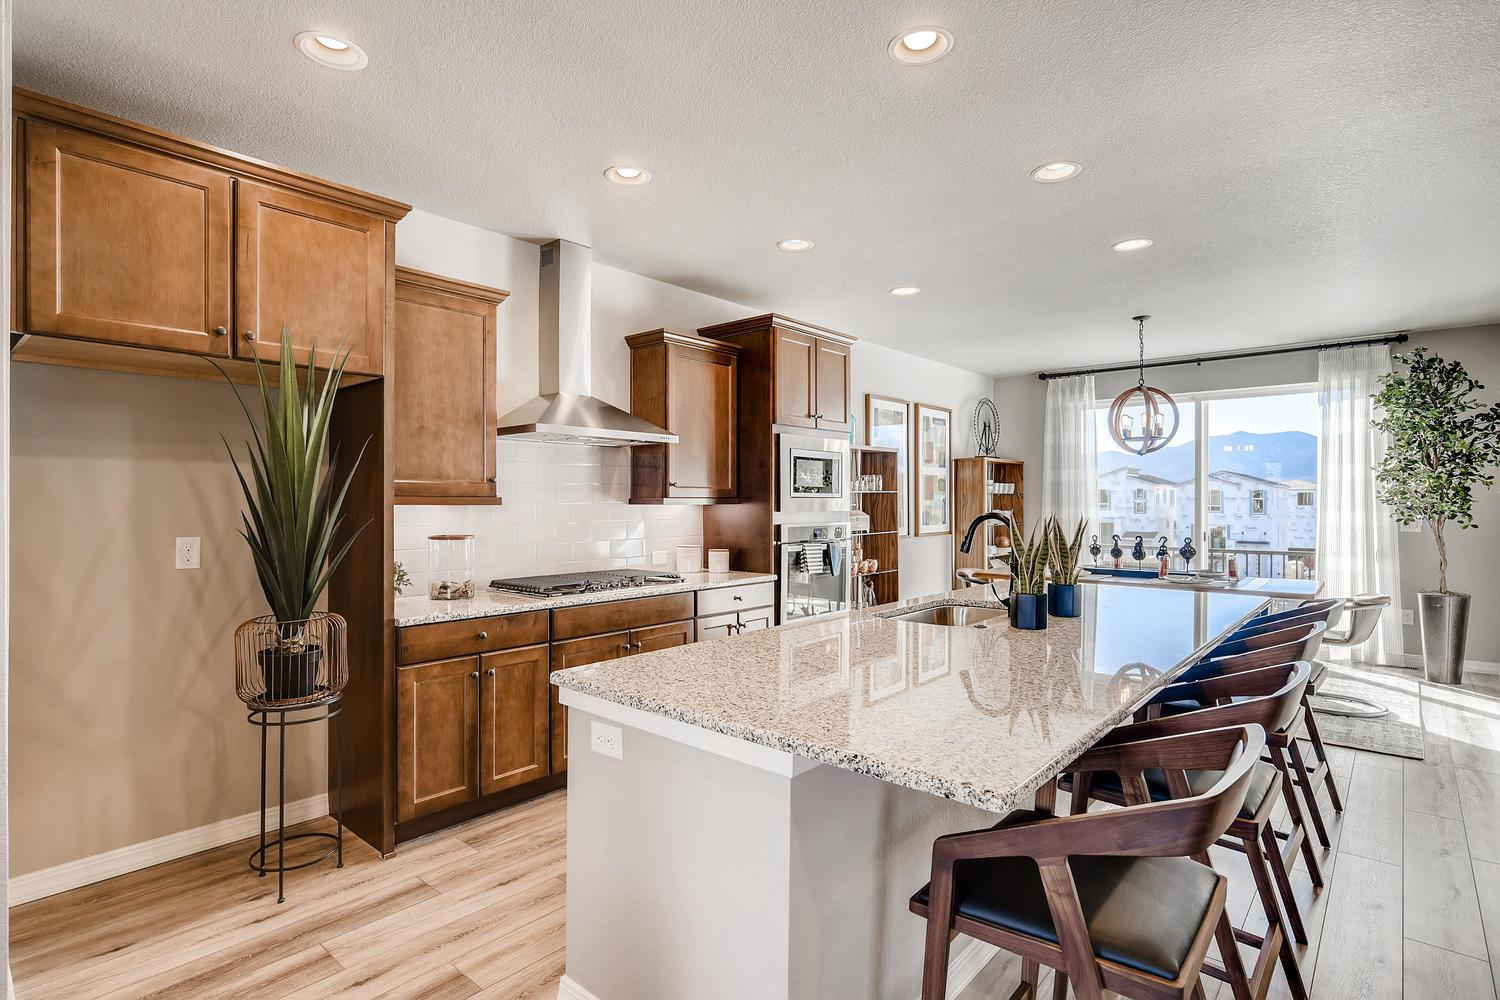 Kitchen featured in the 224 By Classic Homes in Colorado Springs, CO